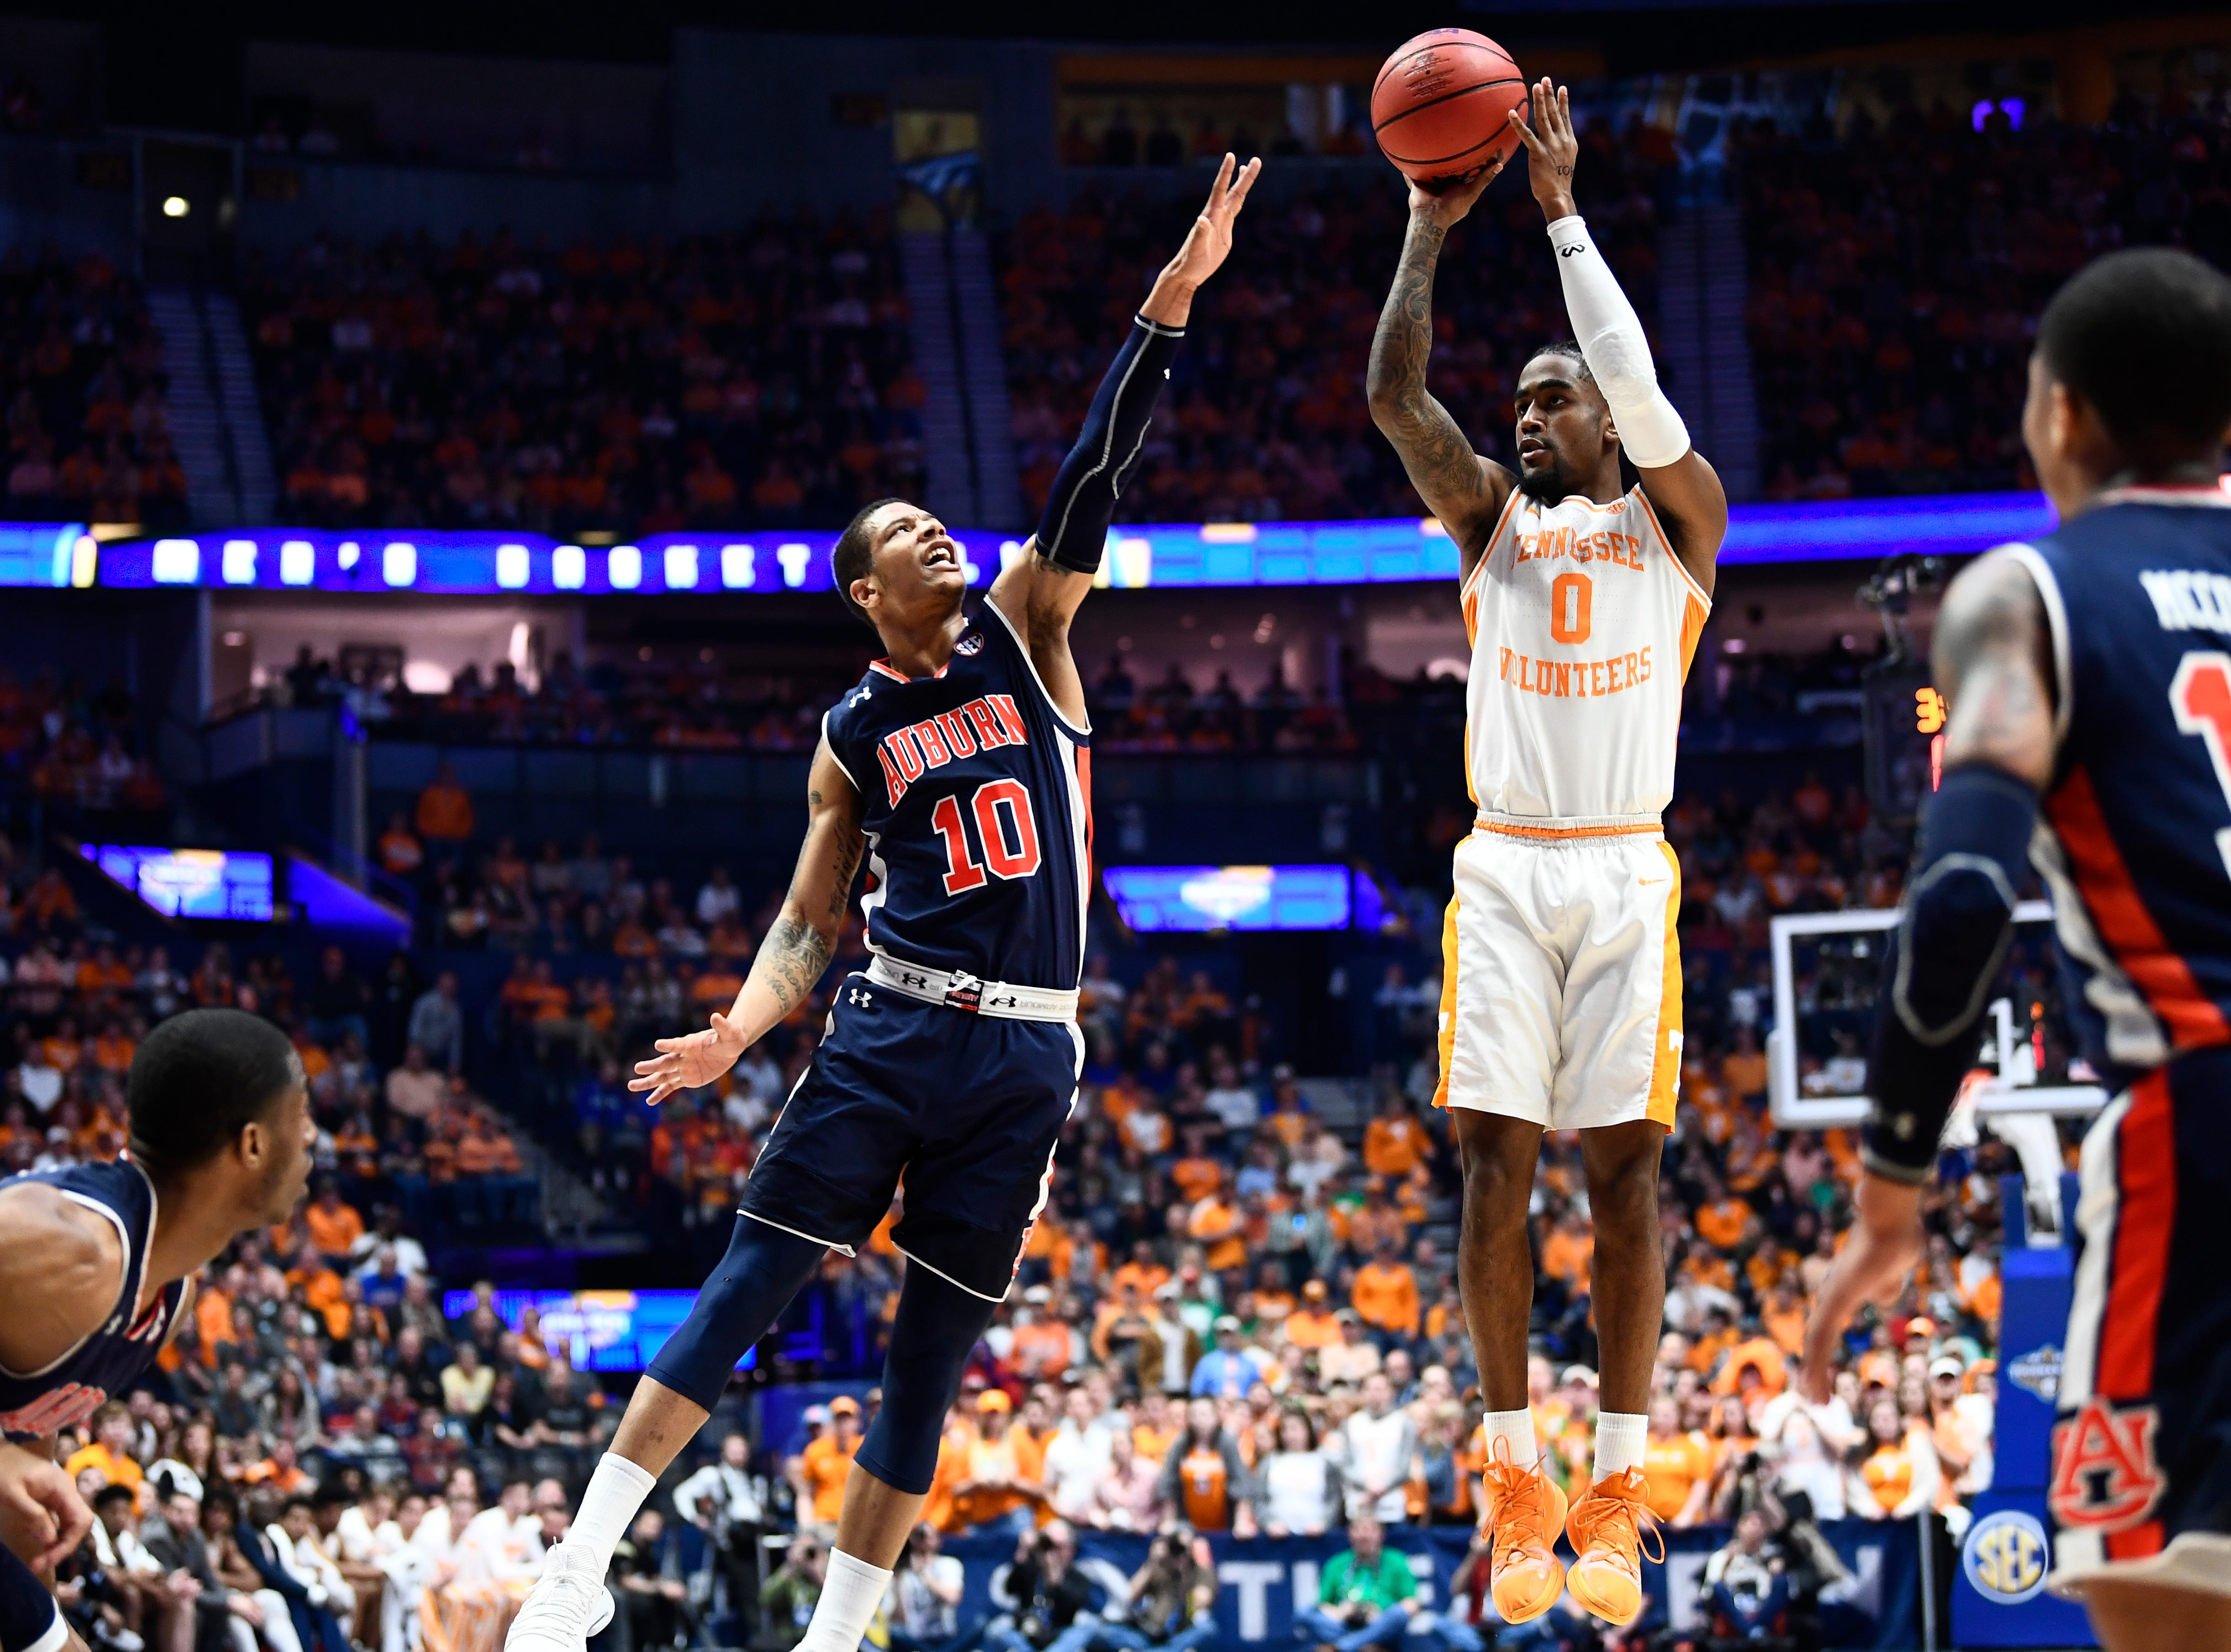 Tennessee guard Jordan Bone (0) takes a shot while defended by by Auburn guard Samir Doughty (10) during the first half of the SEC Men's Basketball Tournament championship game at Bridgestone Arena in Nashville, Tenn., Sunday, March 17, 2019.